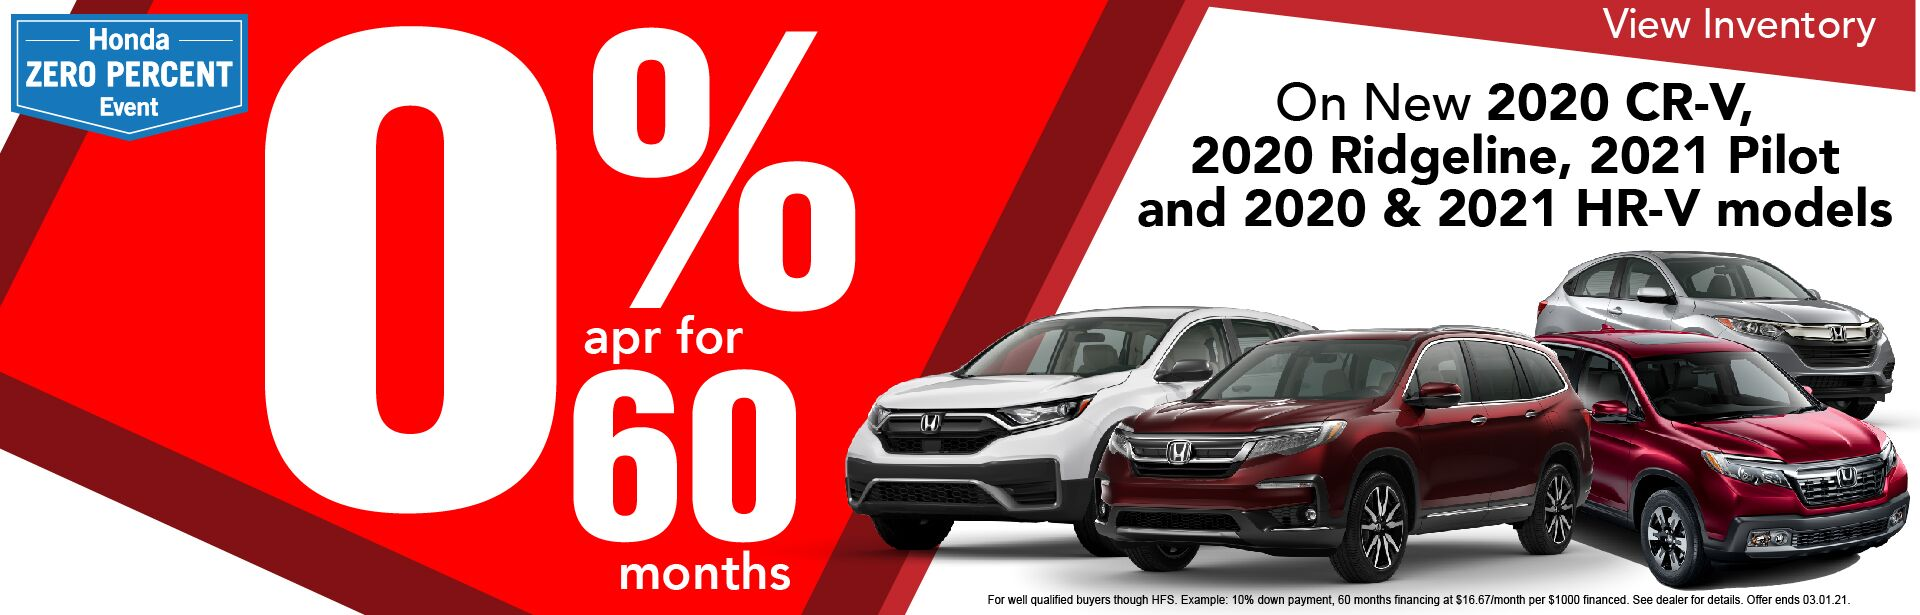 0% APR x 60 on 2020 CR-V, Ridgeline, HR-V and 2021 Pilot and HR-V